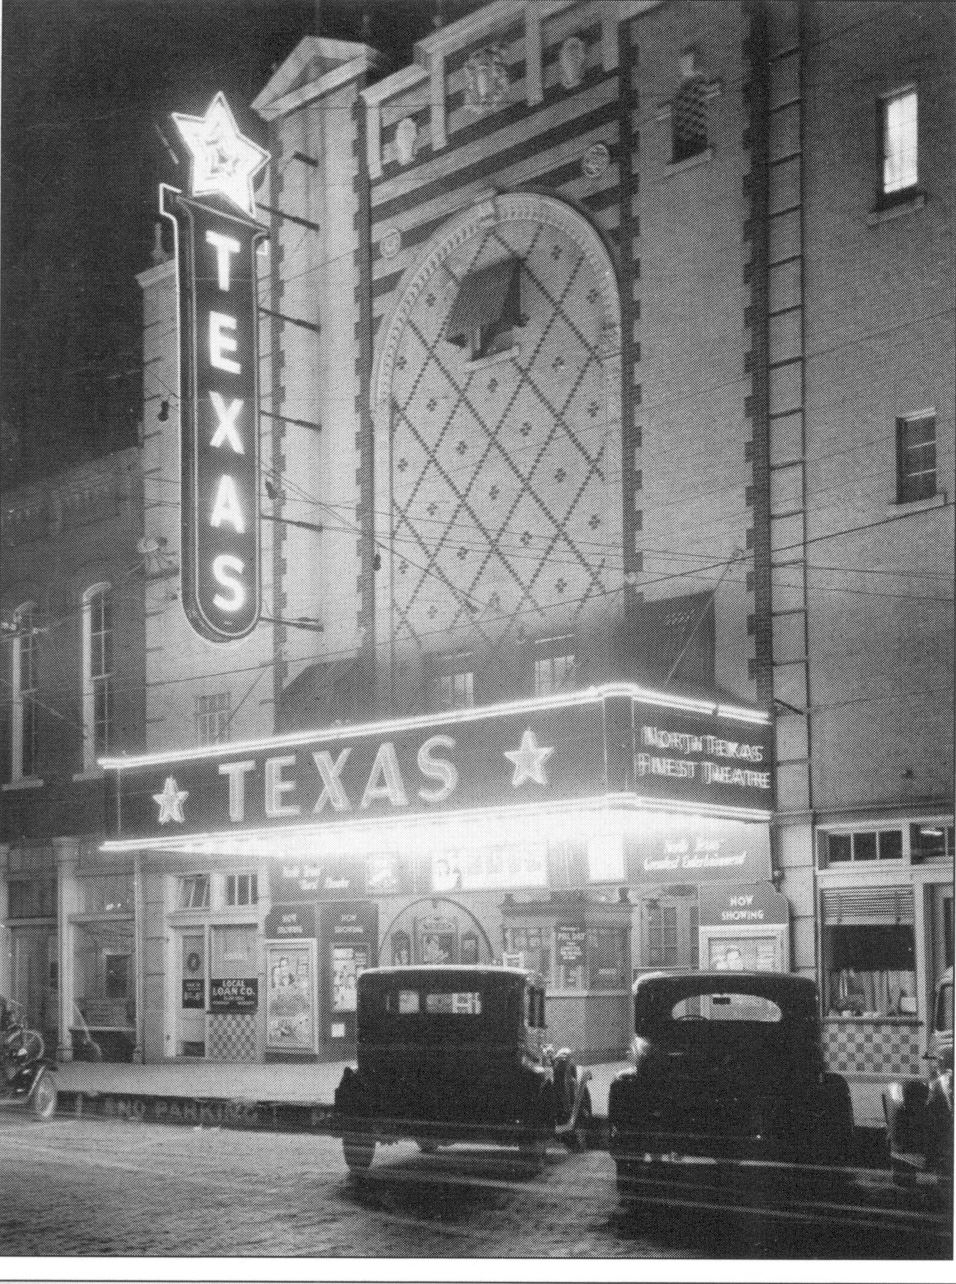 Texas Theater - 1920's